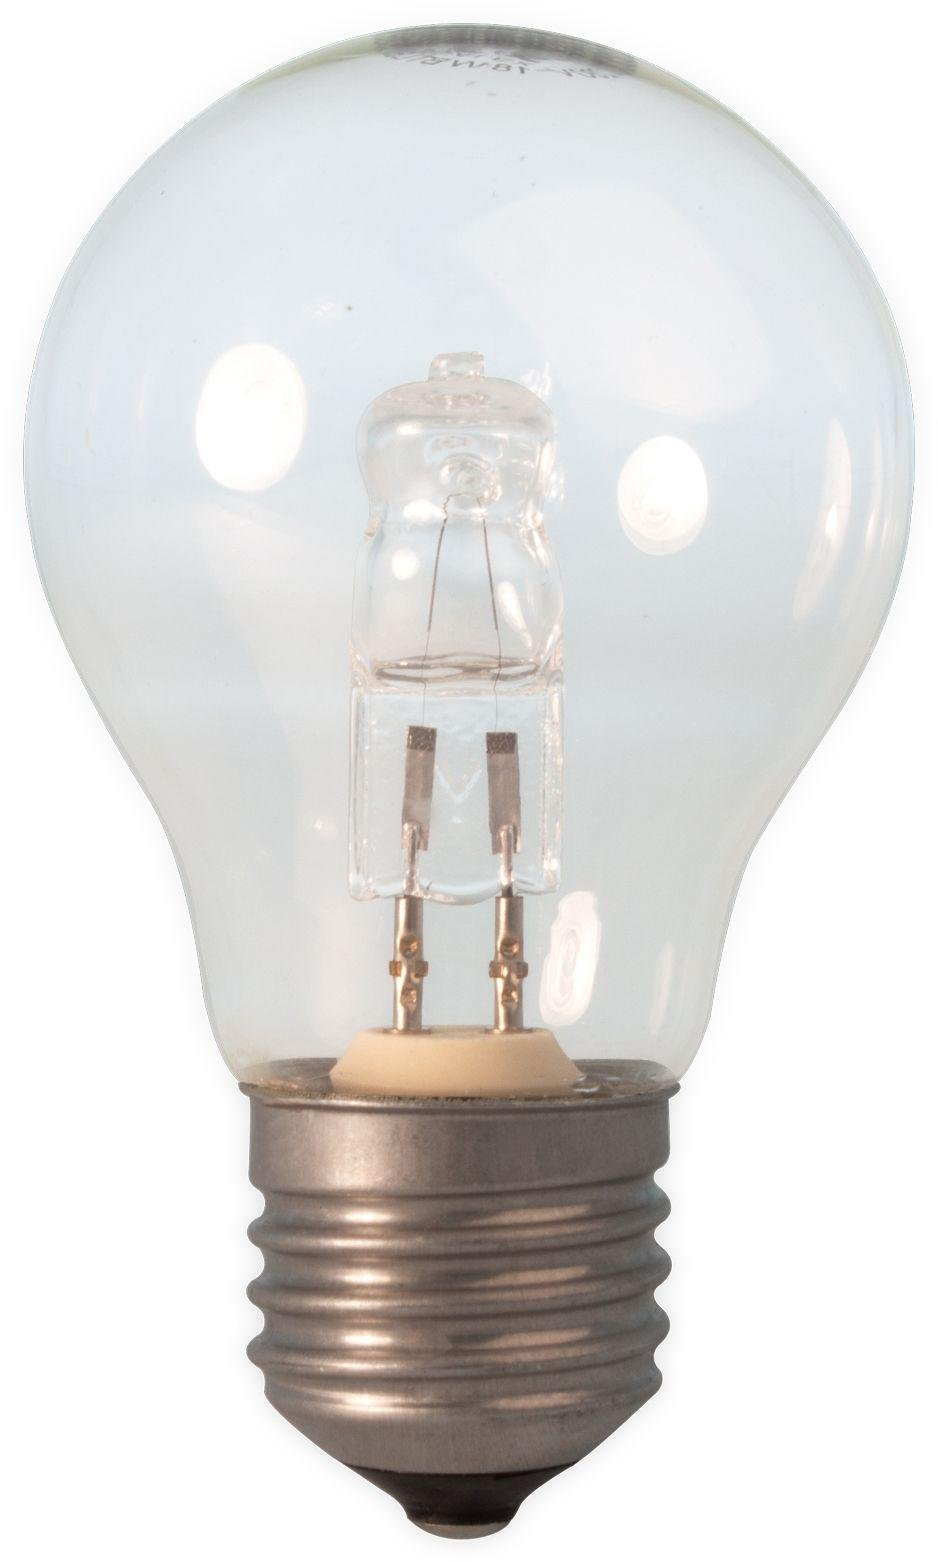 Image of Calex 18W Halogen GLS Lamp Clear Glass Dimm Bulb - 10 Pack